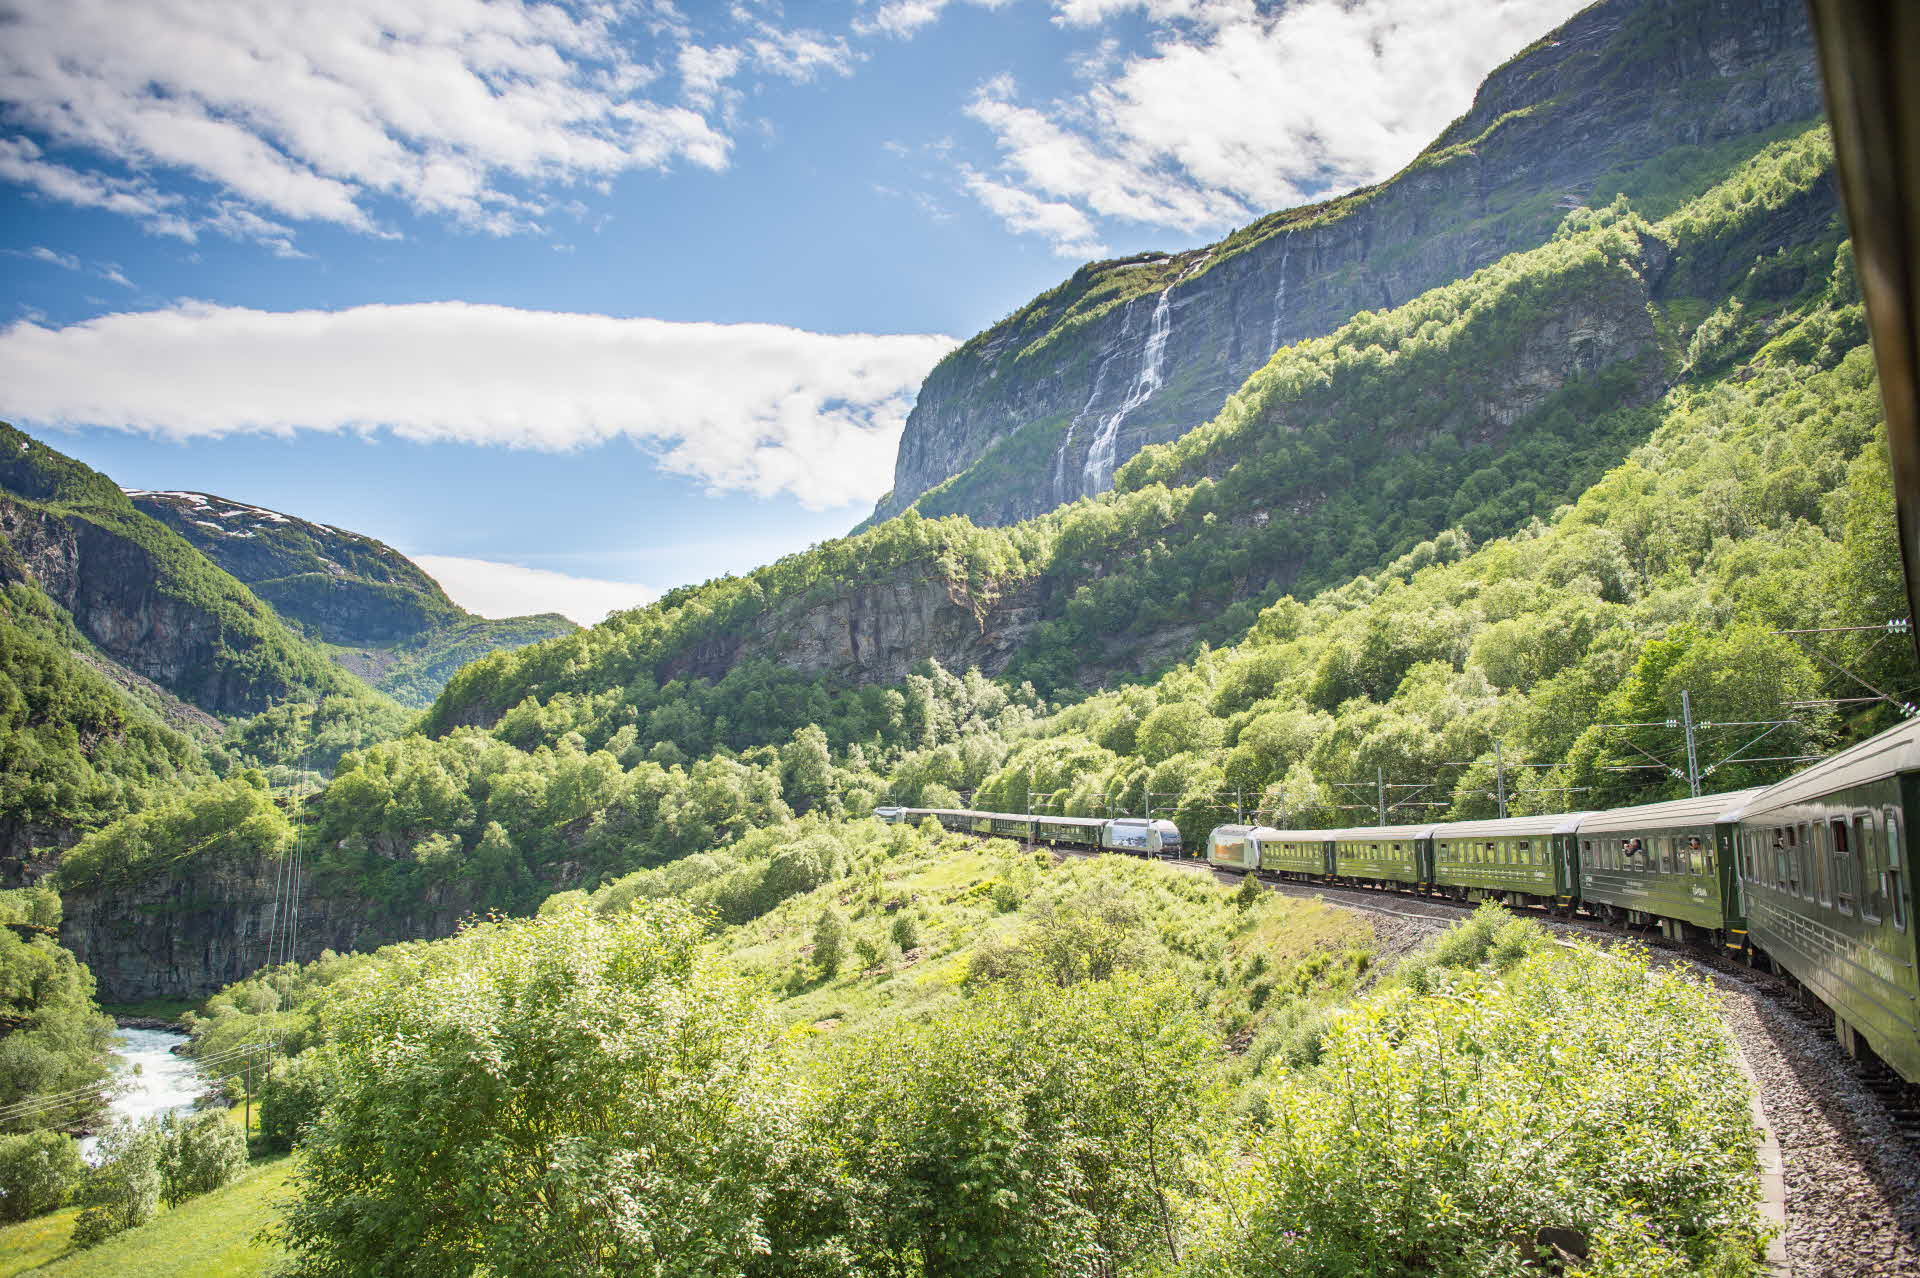 Two trains on the Flåm Railway meet in a rich green valley in summer